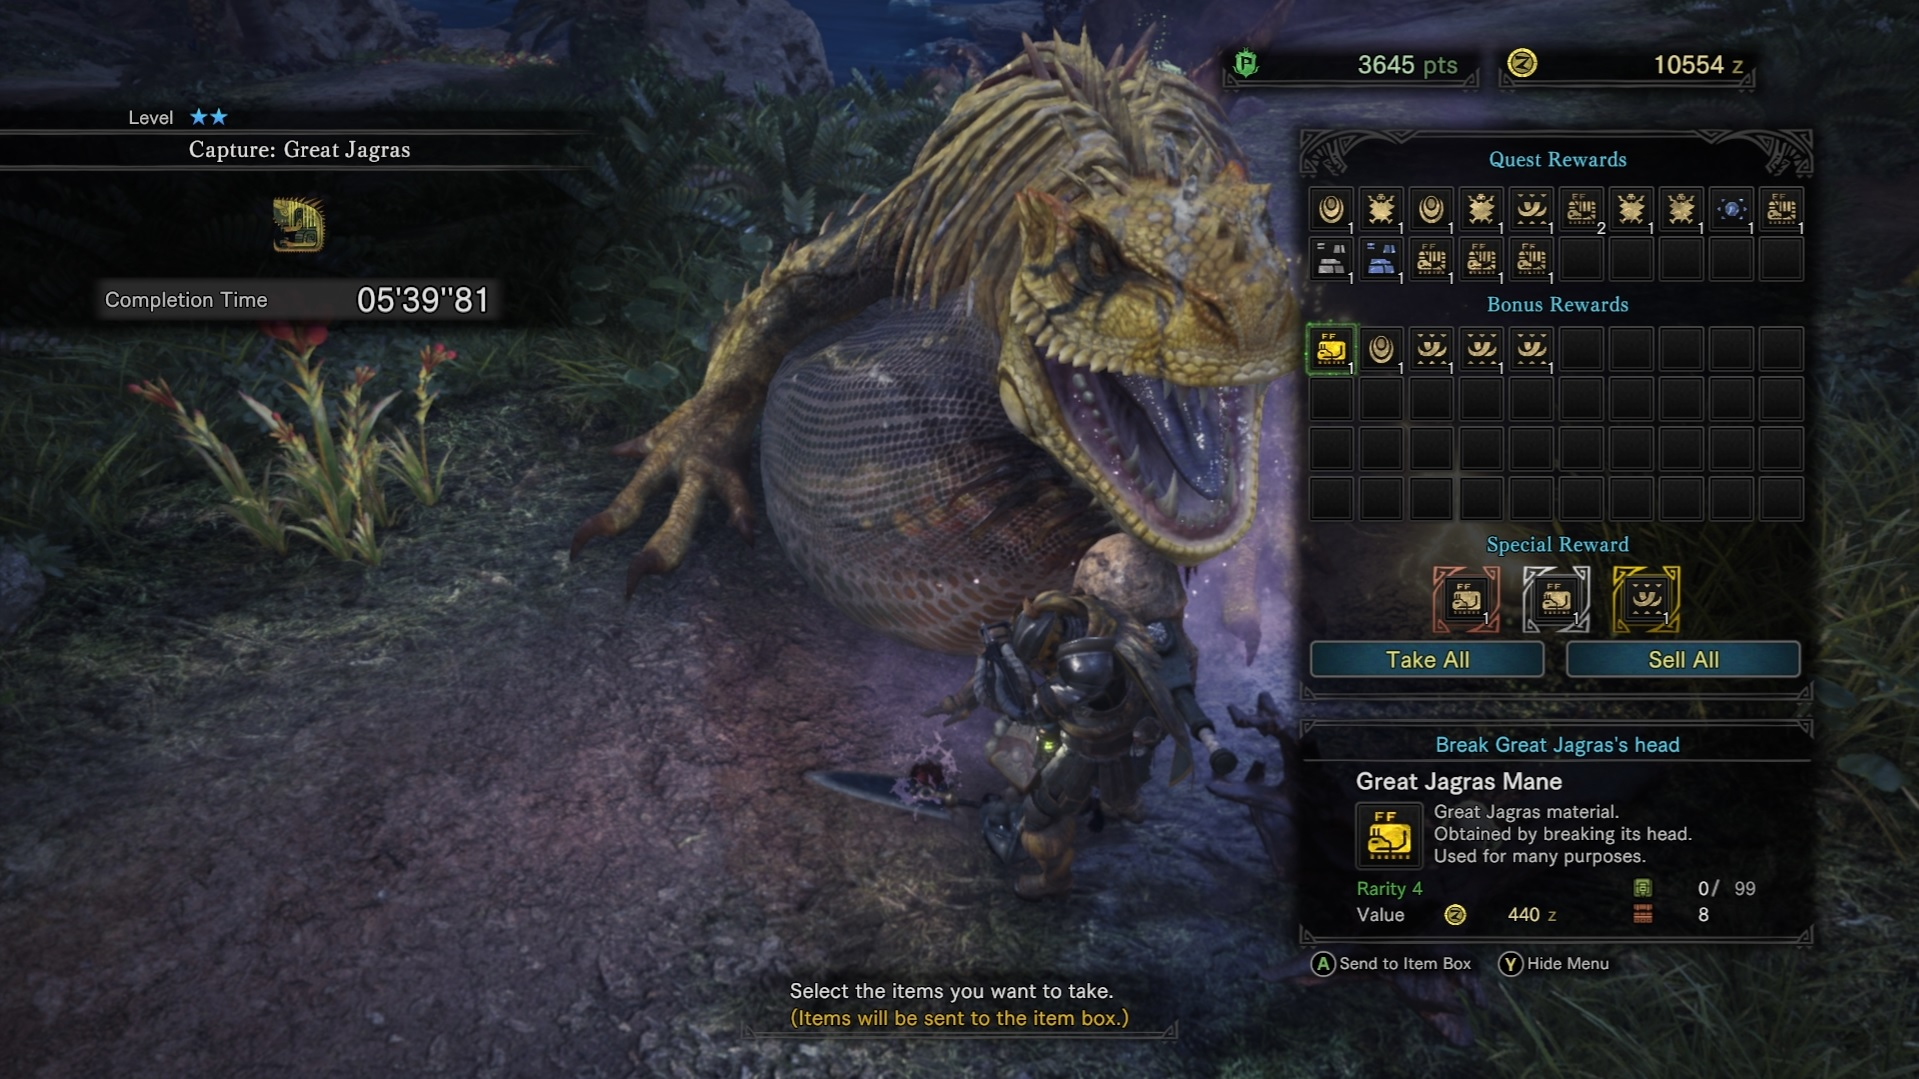 Rewards screen for capturing a Great Jagras.